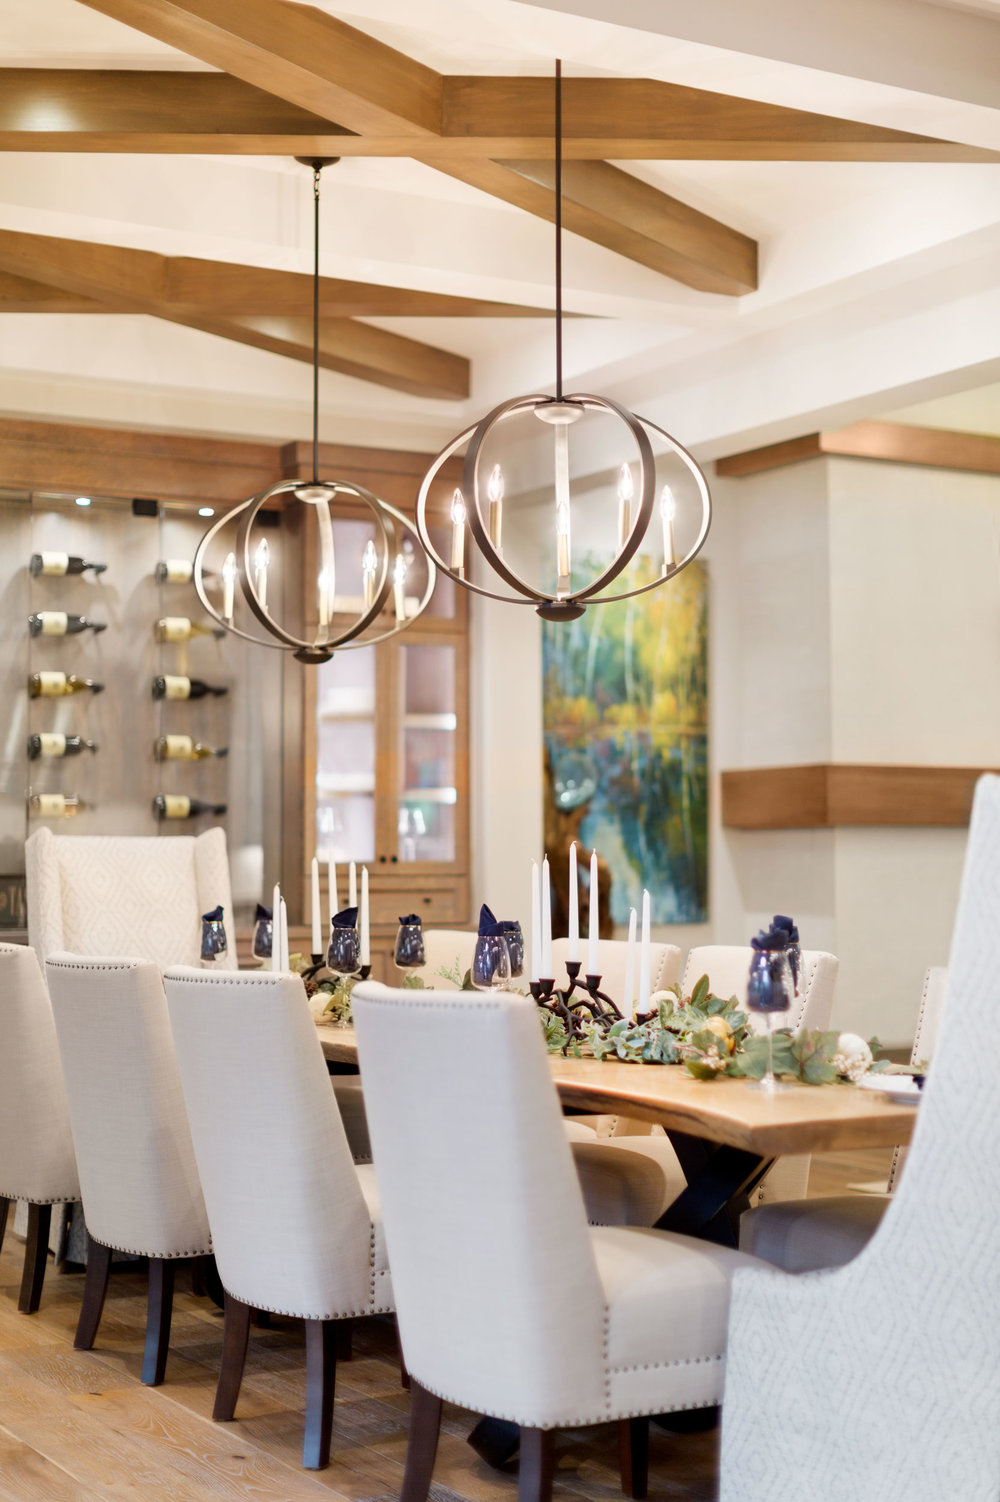 Dining-Room_Elata_43871OZ-1496_497_498_499_500_501_502_tonemappedv2.jpg